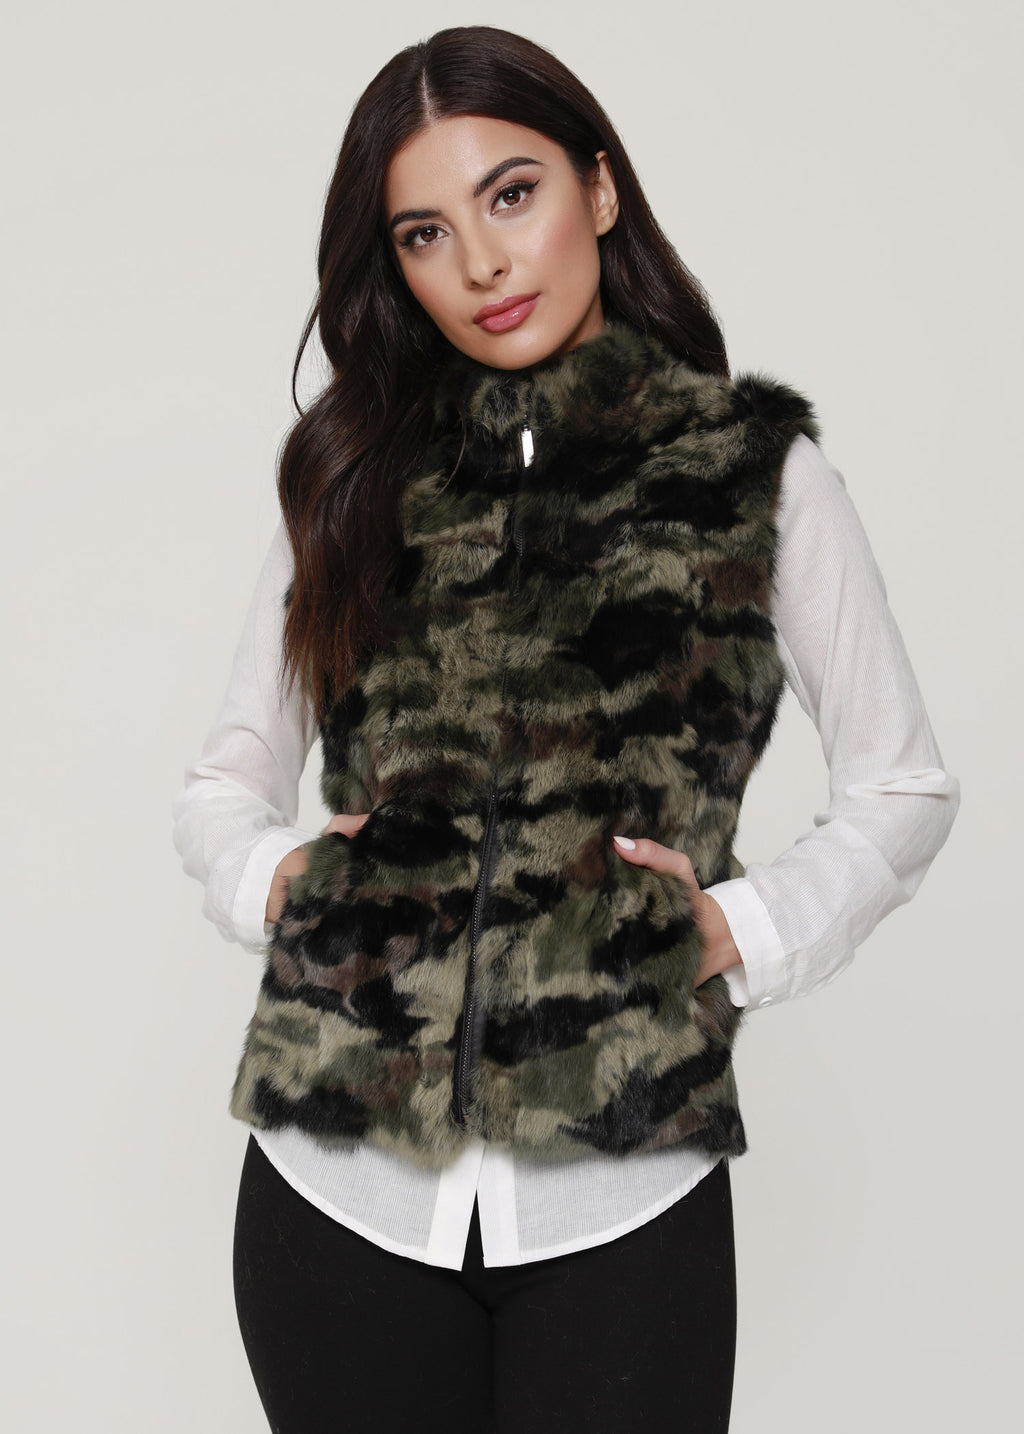 Camouflage Rabbit fur Vest